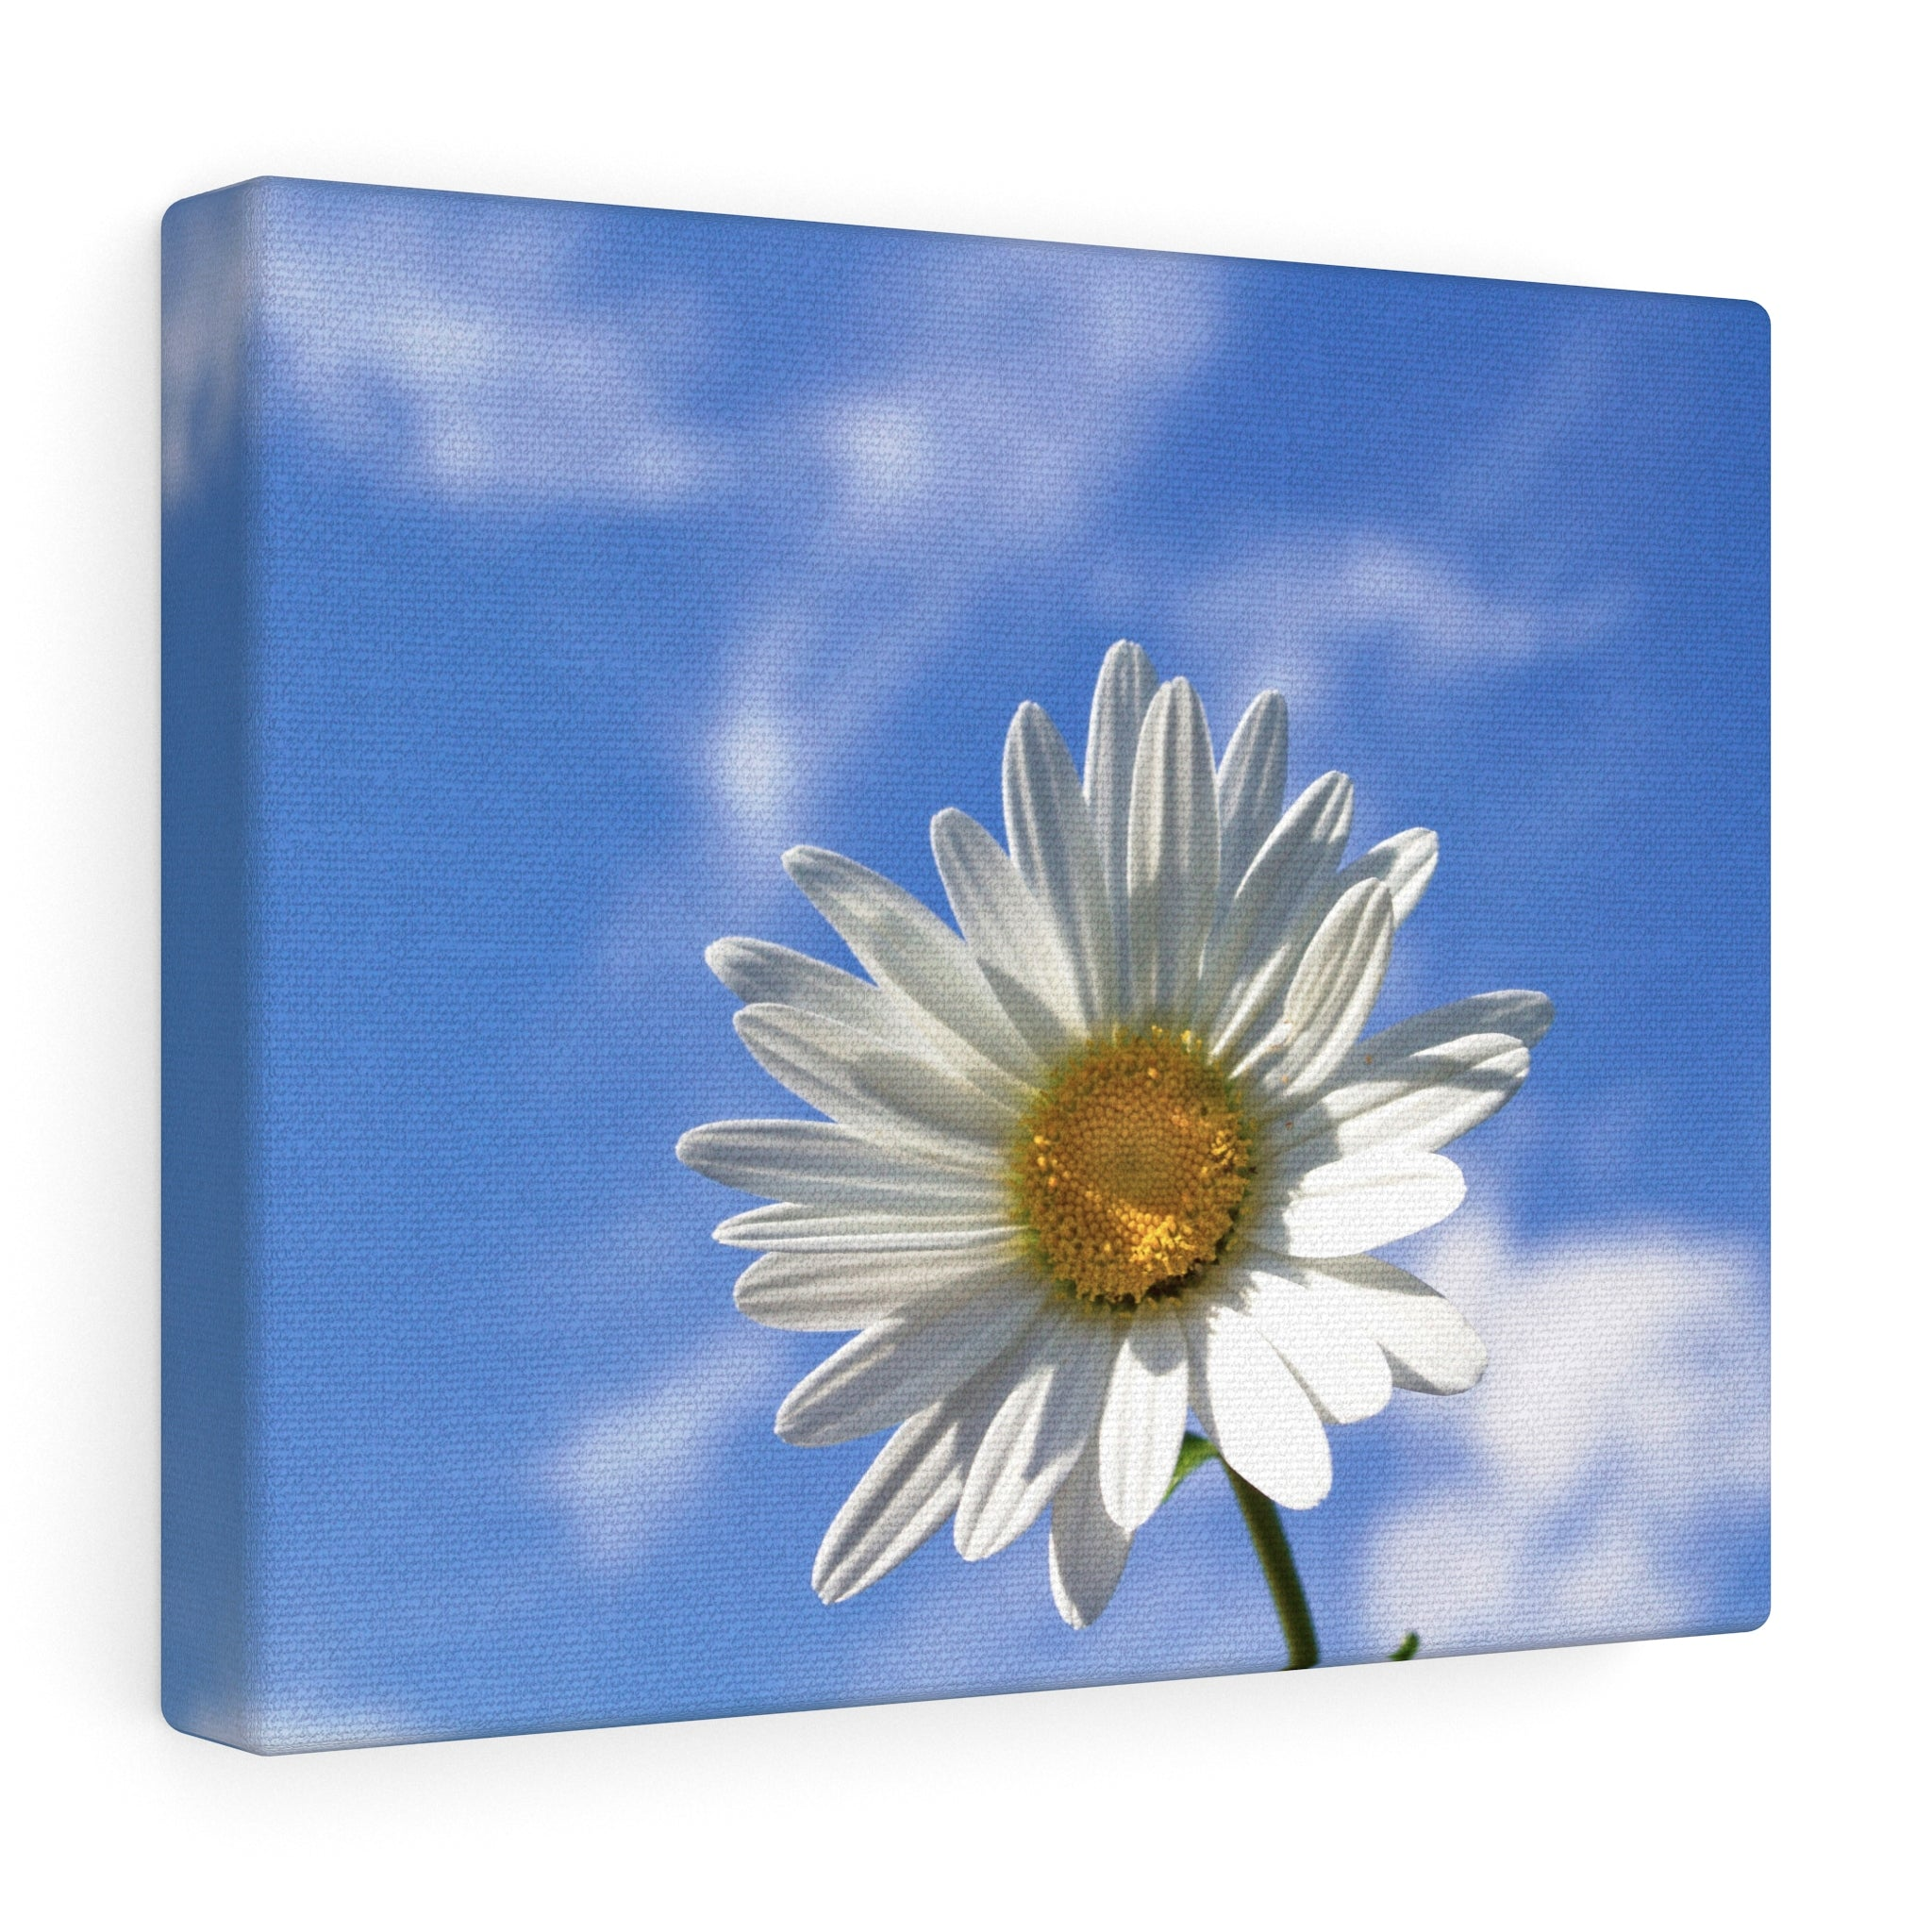 Happy as a Daisy Canvas Gallery Wrap